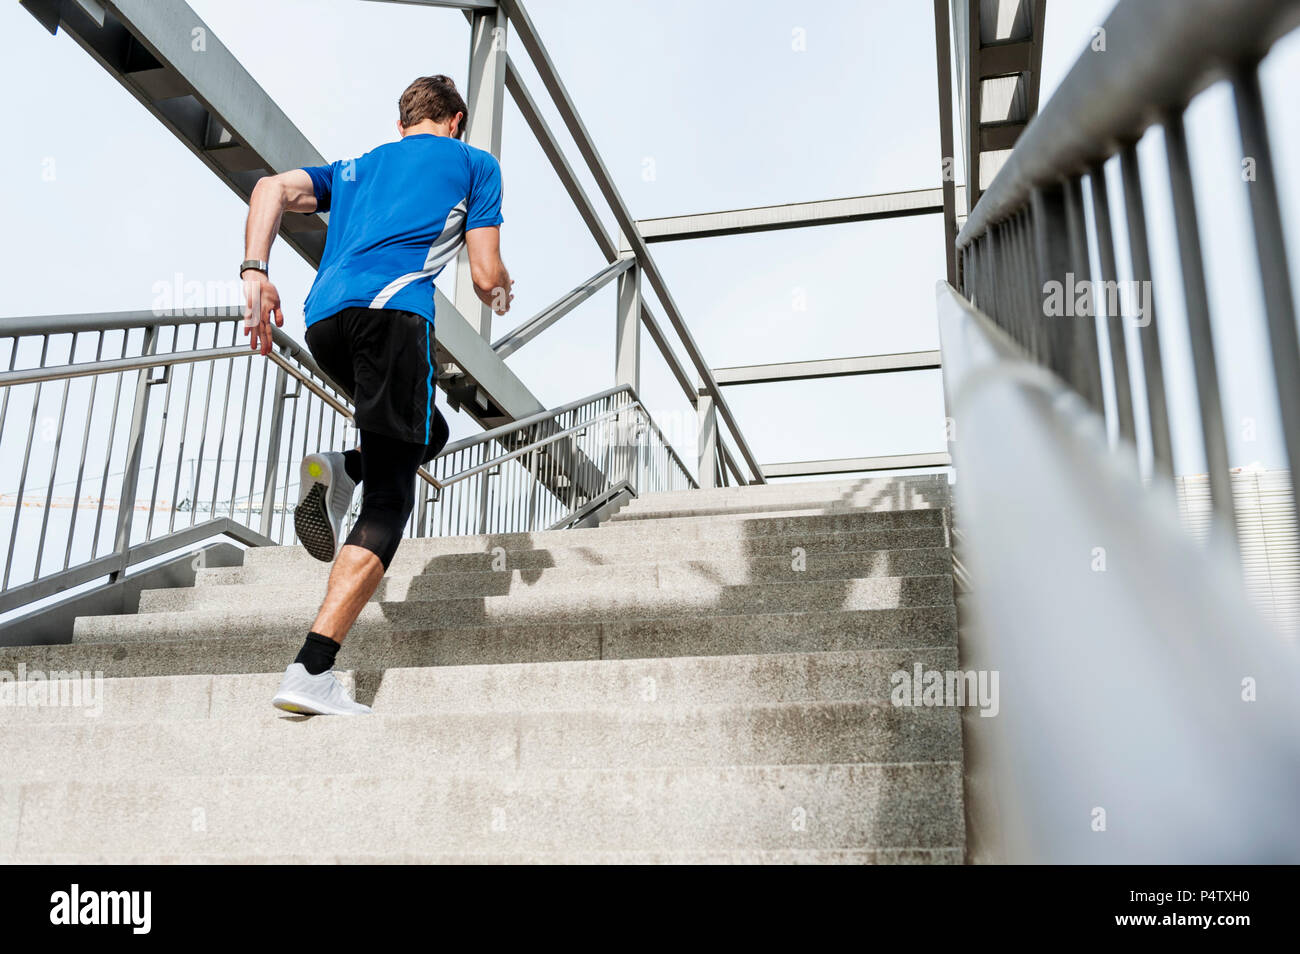 Man running up stairs - Stock Image